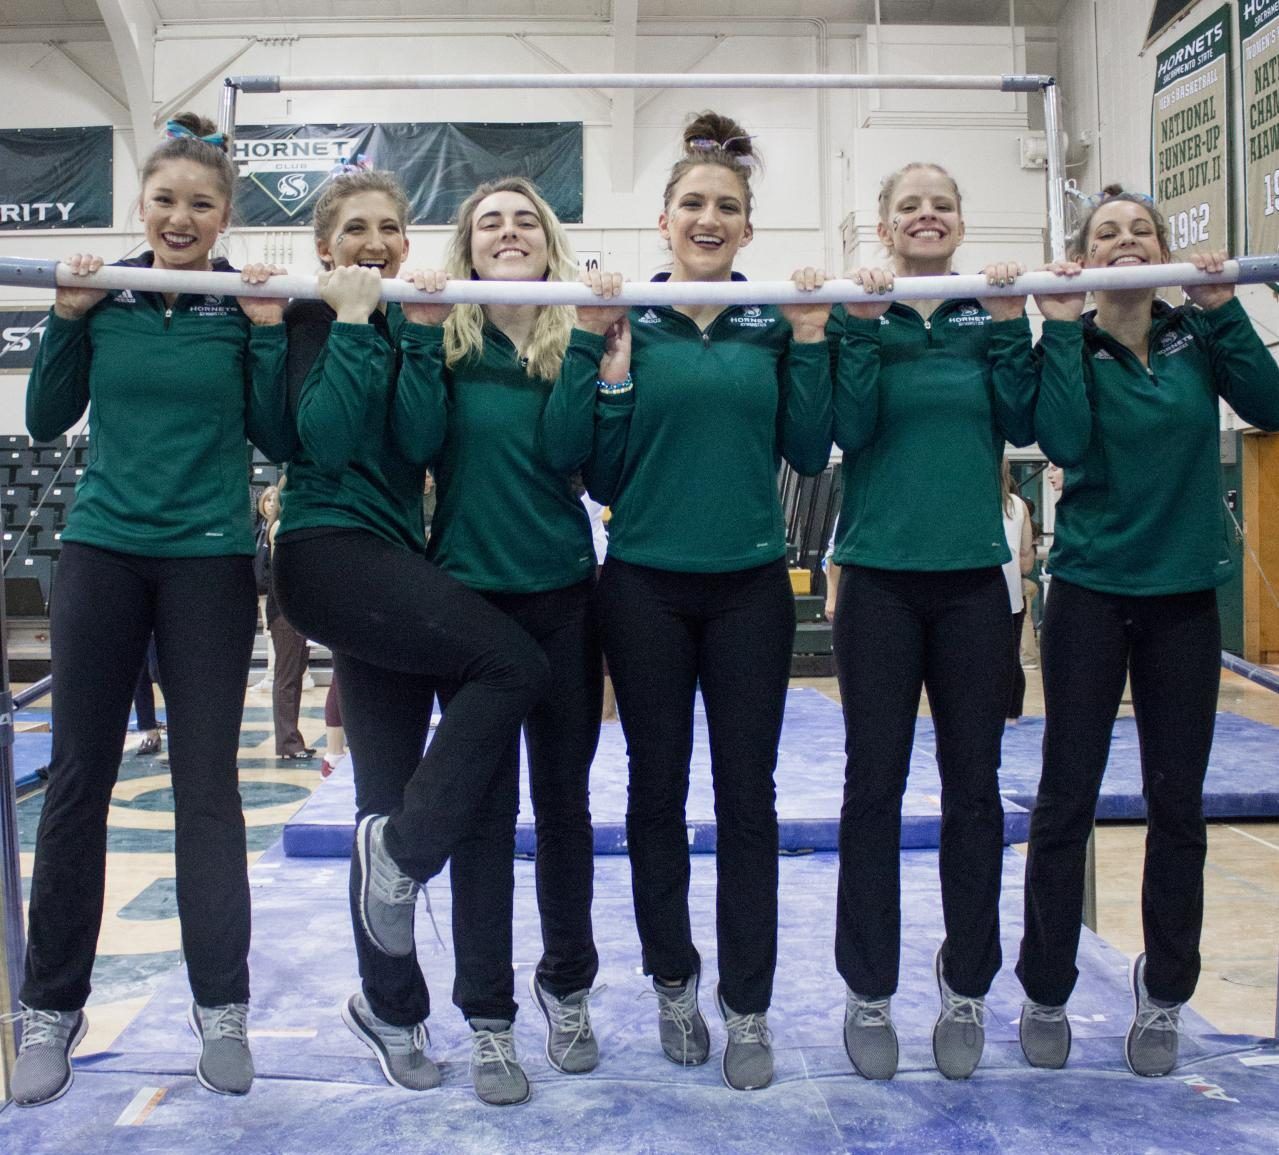 From left to right, Sacramento State senior gymnasts Courteney Ng, Caitlin Soliwoda, Lauren Rice, Courtney Soliwoda, Jennifer Brenner and Annie Juarez will be honored for their contributions to the gymnastics team during senior night at the Nest on Friday, March 16, 2018.